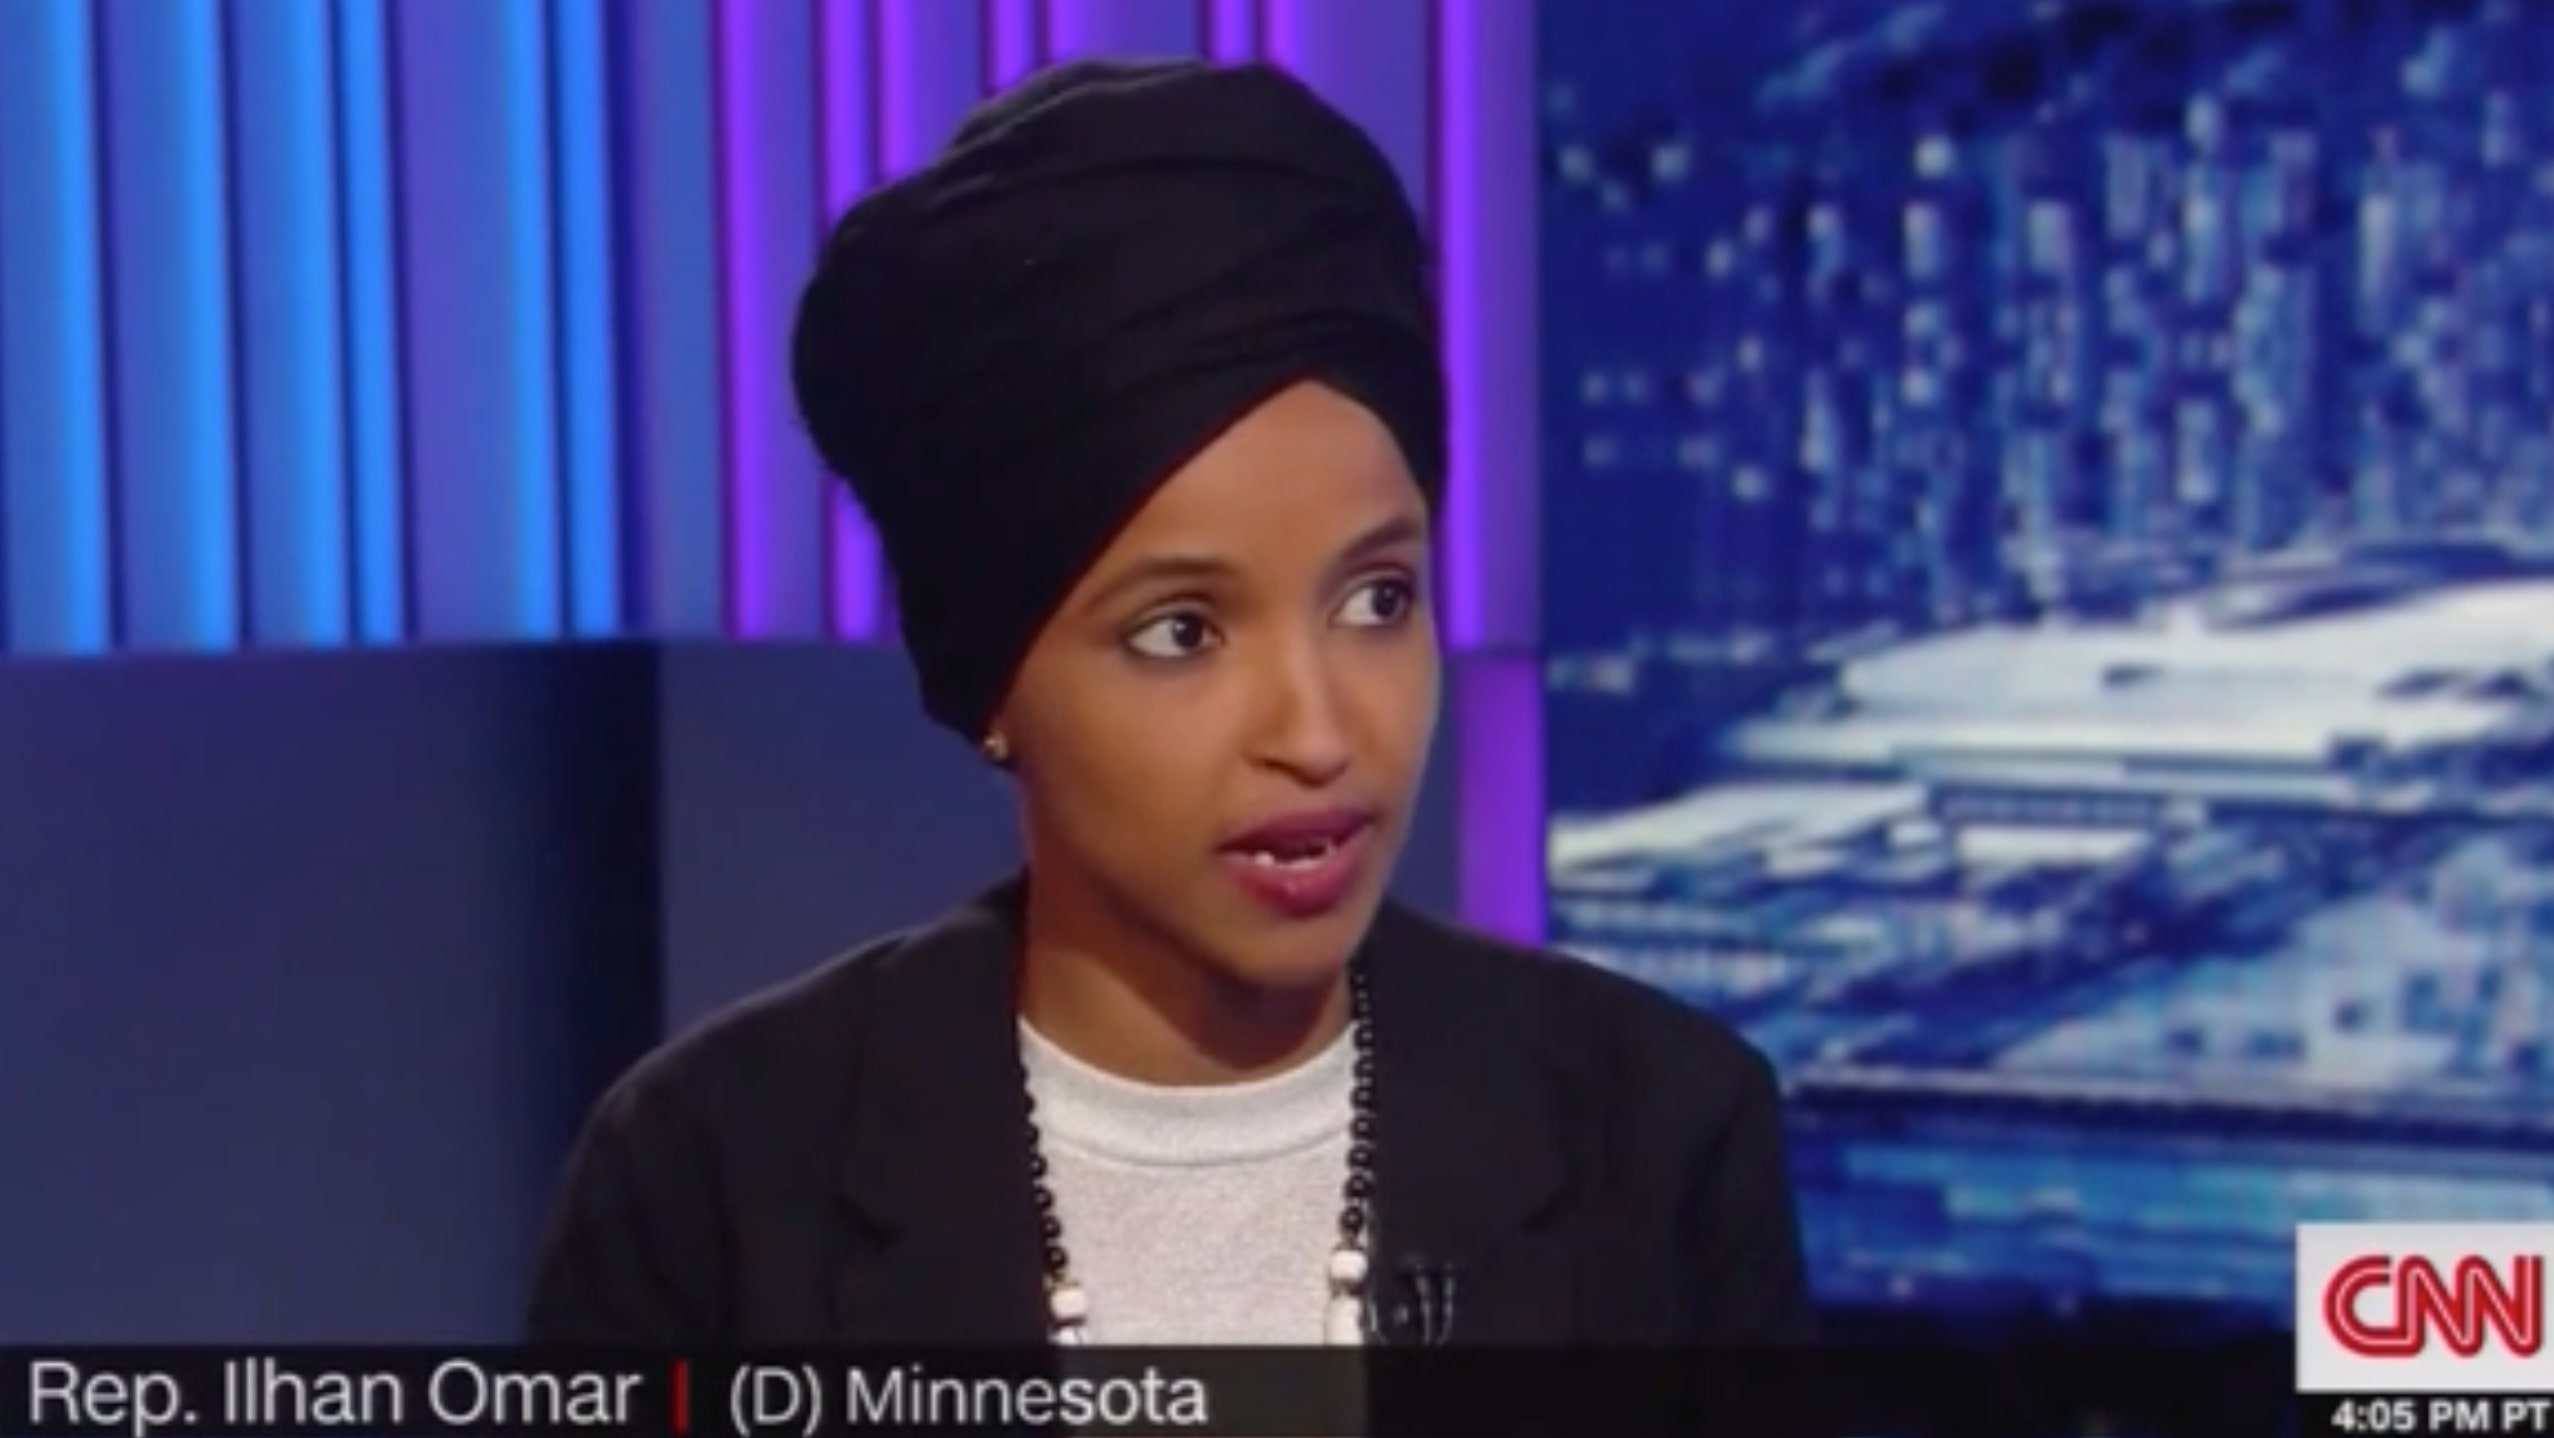 Rep. Ilhan Omar Laughs at Trump's Fluster on Foreign Dirt Comments: 'Like When Your Child is in Trouble'